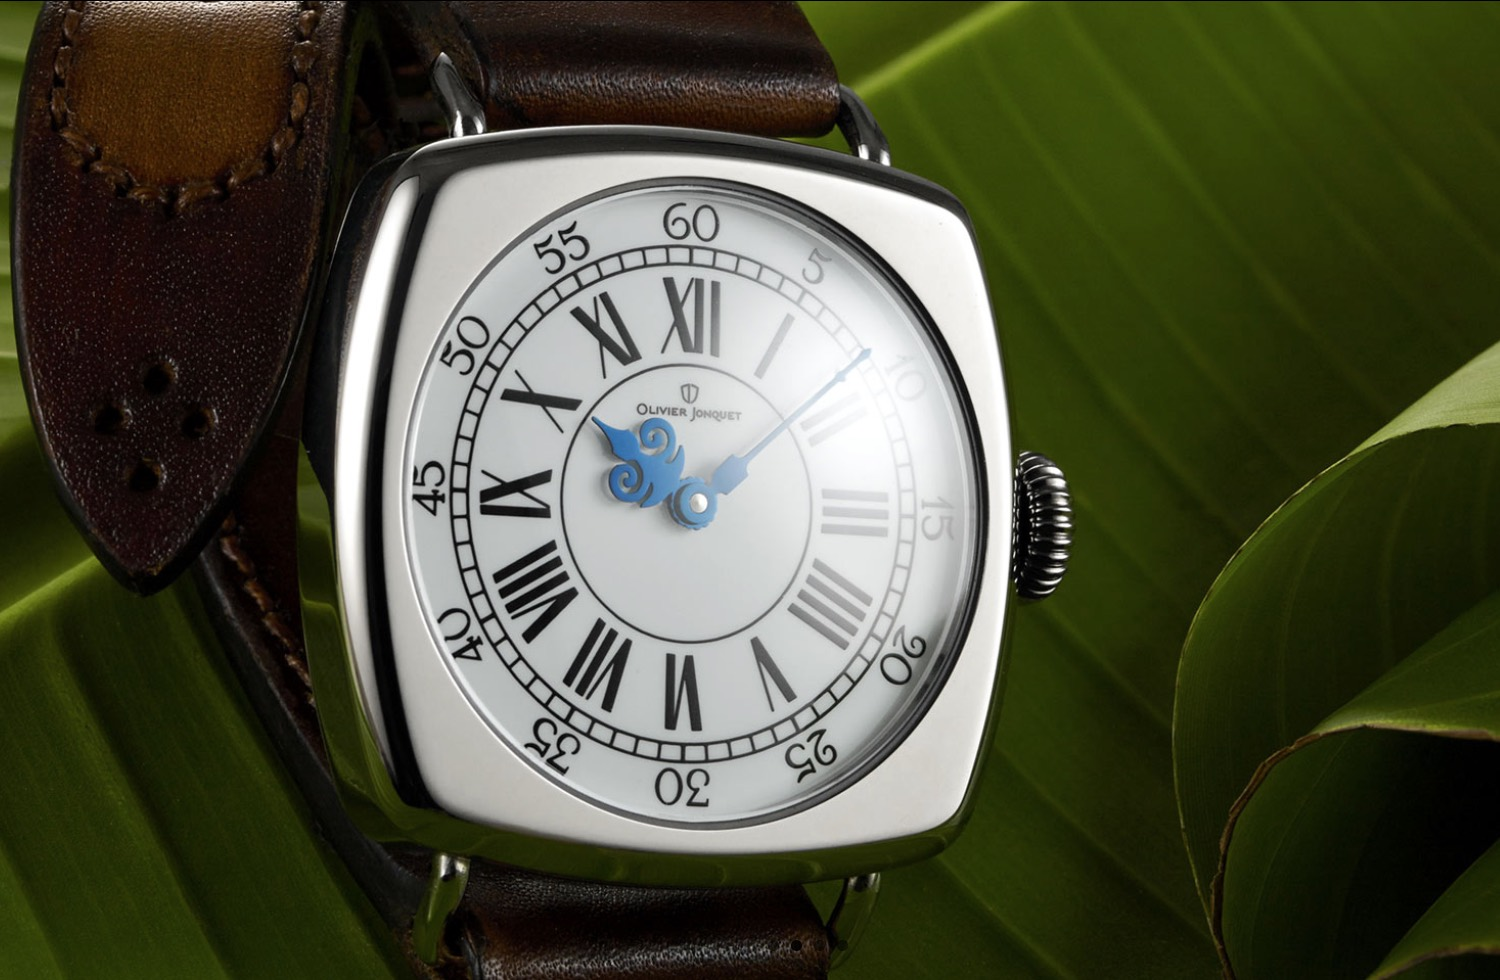 brings nowa watches style french hybrid sophistication to